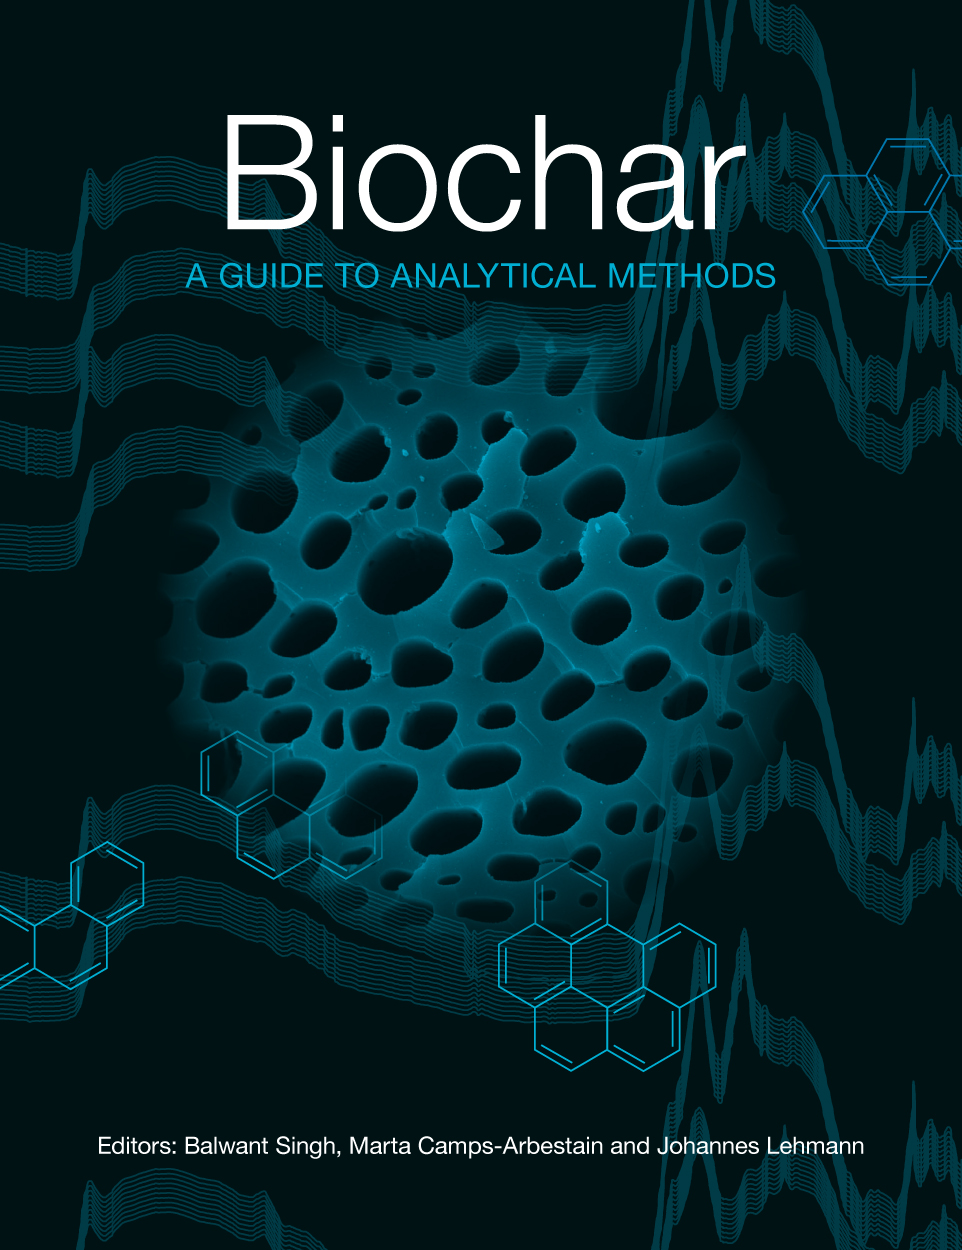 Cover featuring an abstract arrangement of a microscope image of biochar a